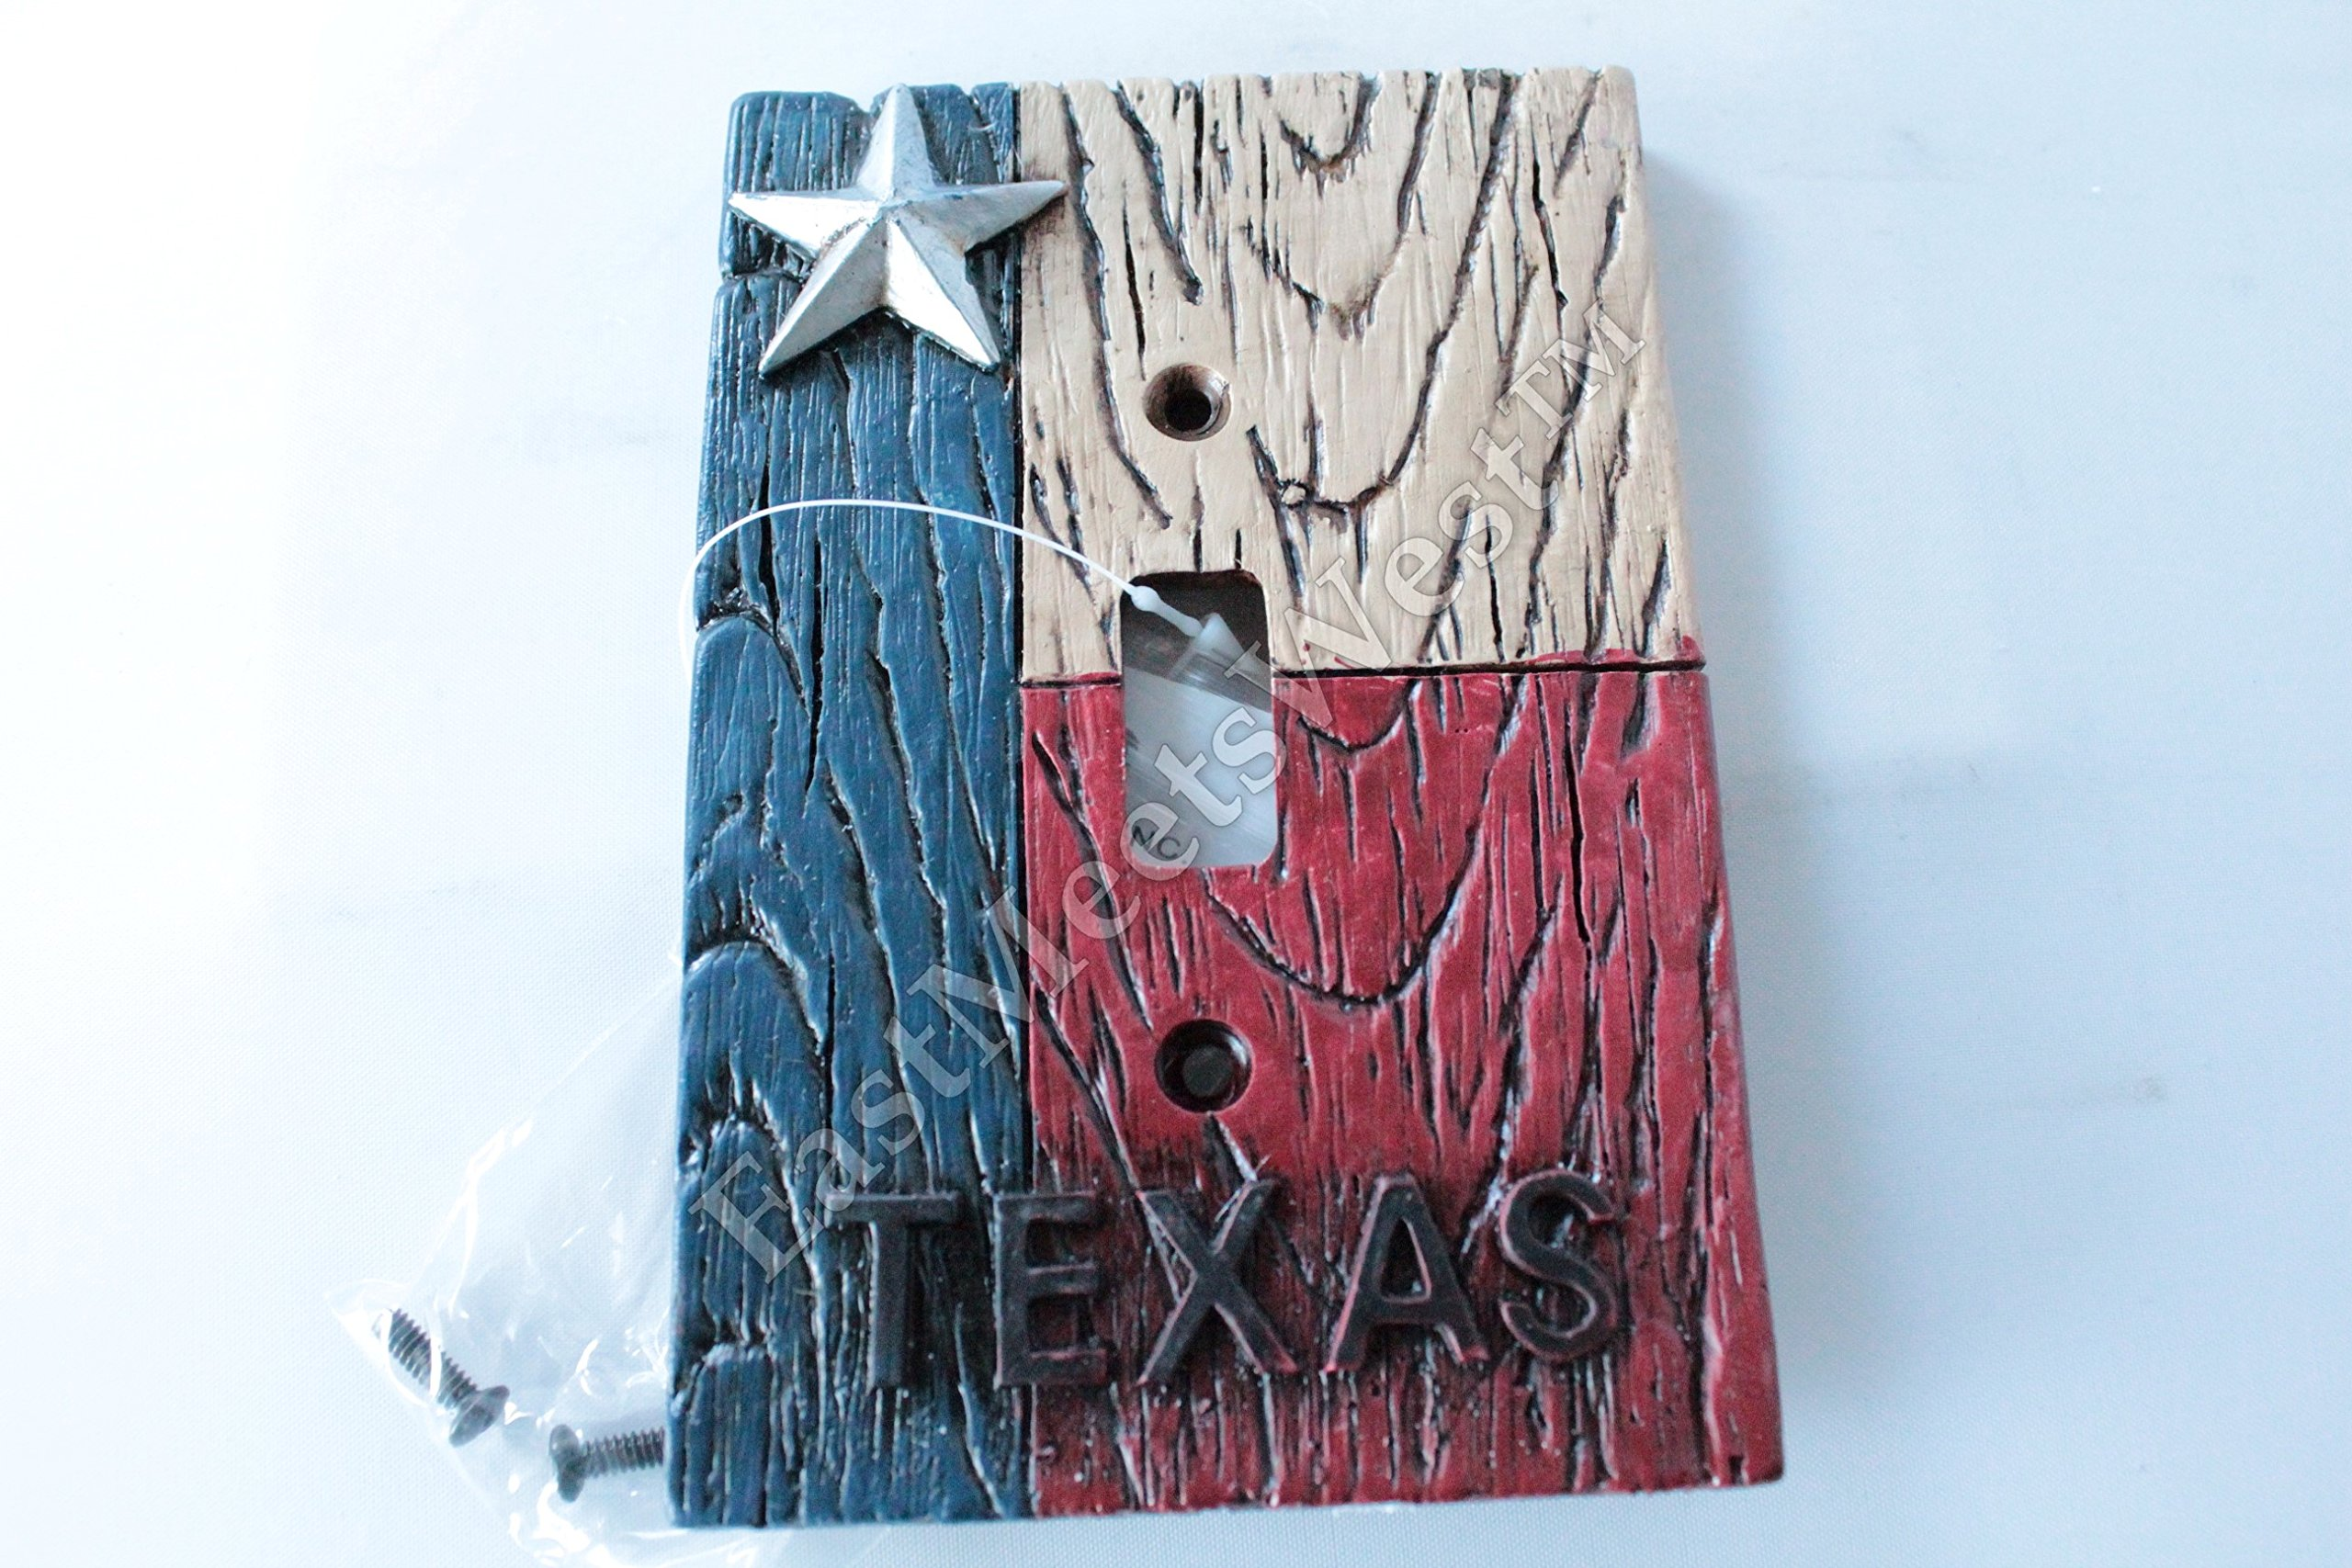 Western Cowboy Texas Flag Star Switch Plate Covers Electric Outlet Rustic Wood Look Decor (Single Switch)